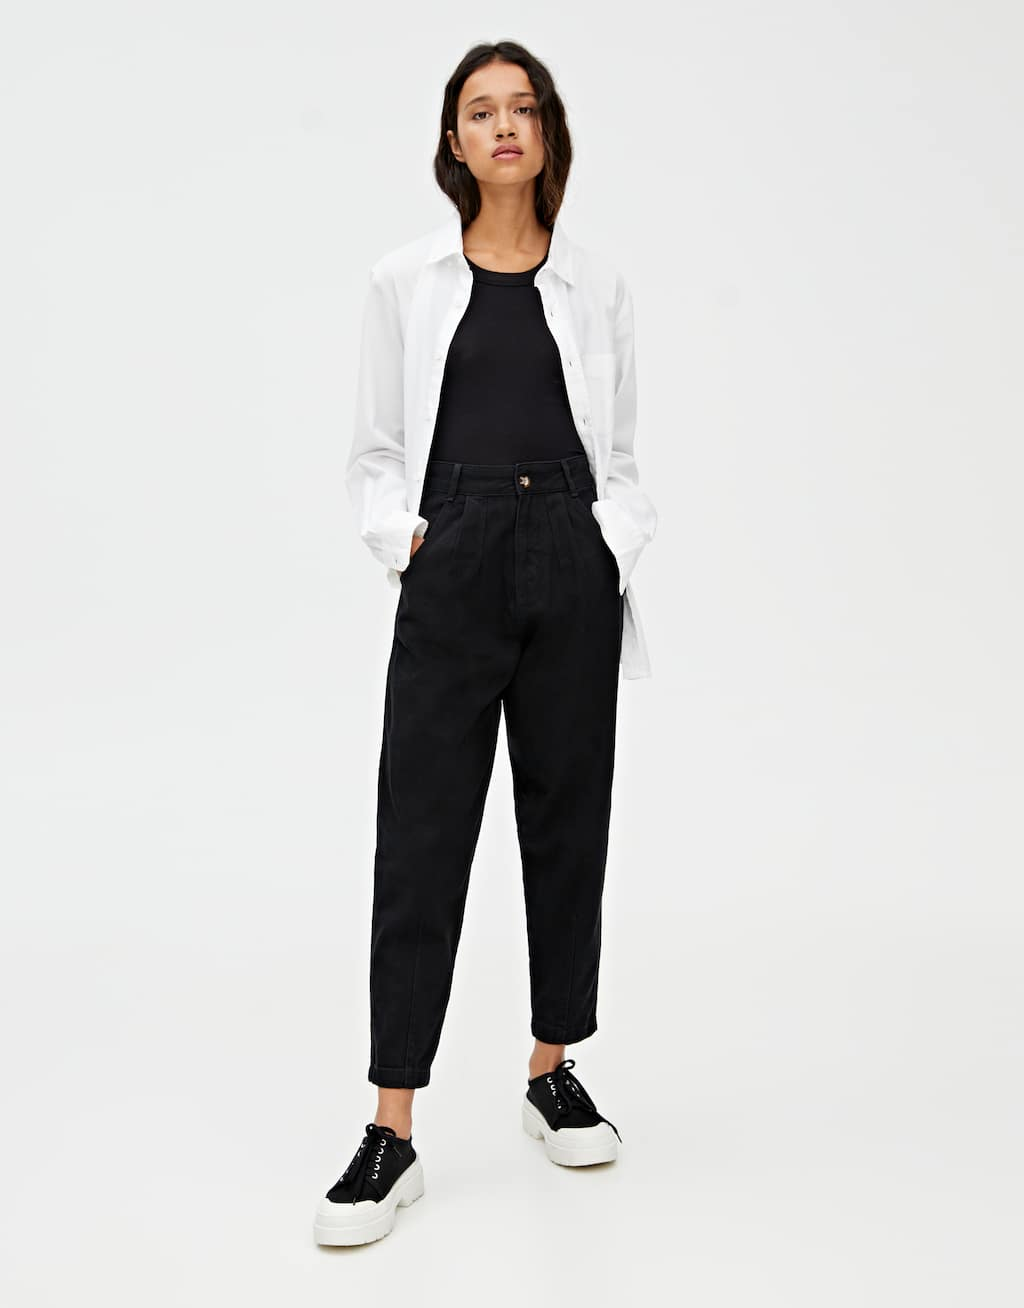 Basic Black Slouchy Jeans by Pull & Bear